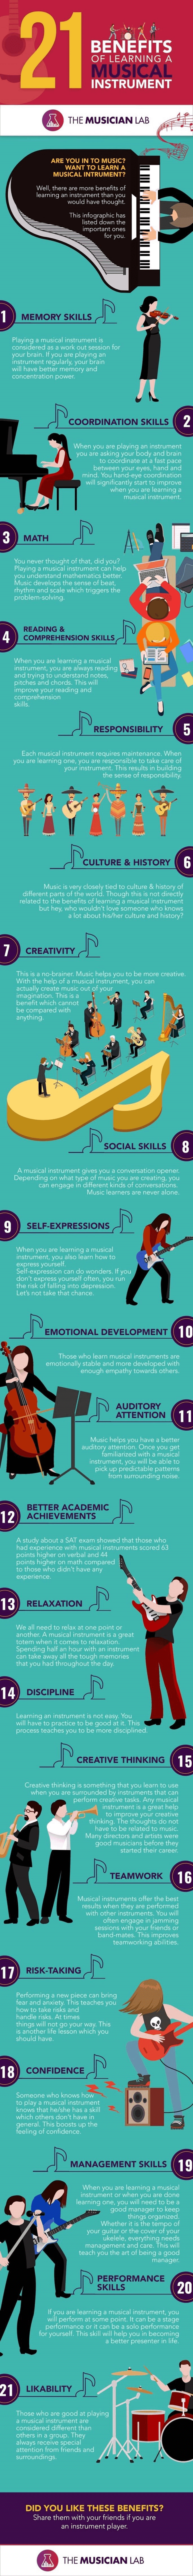 21 Benefits of leaning a musical instrument